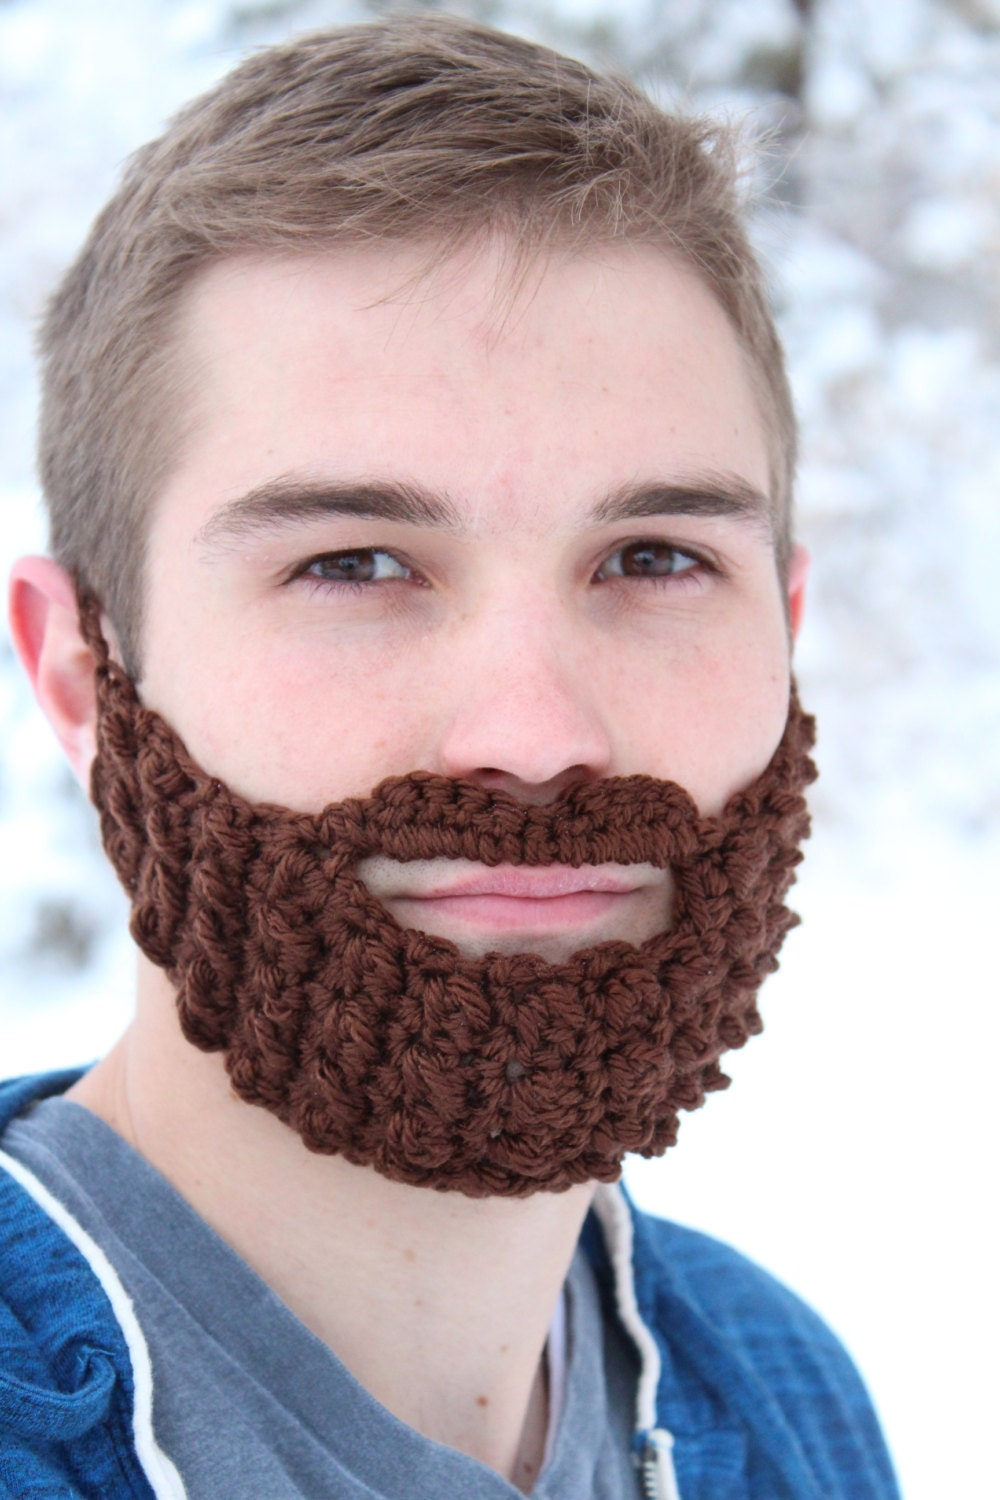 7 Colors Adult Beard Face Warmer Made From Crocheted Yarn